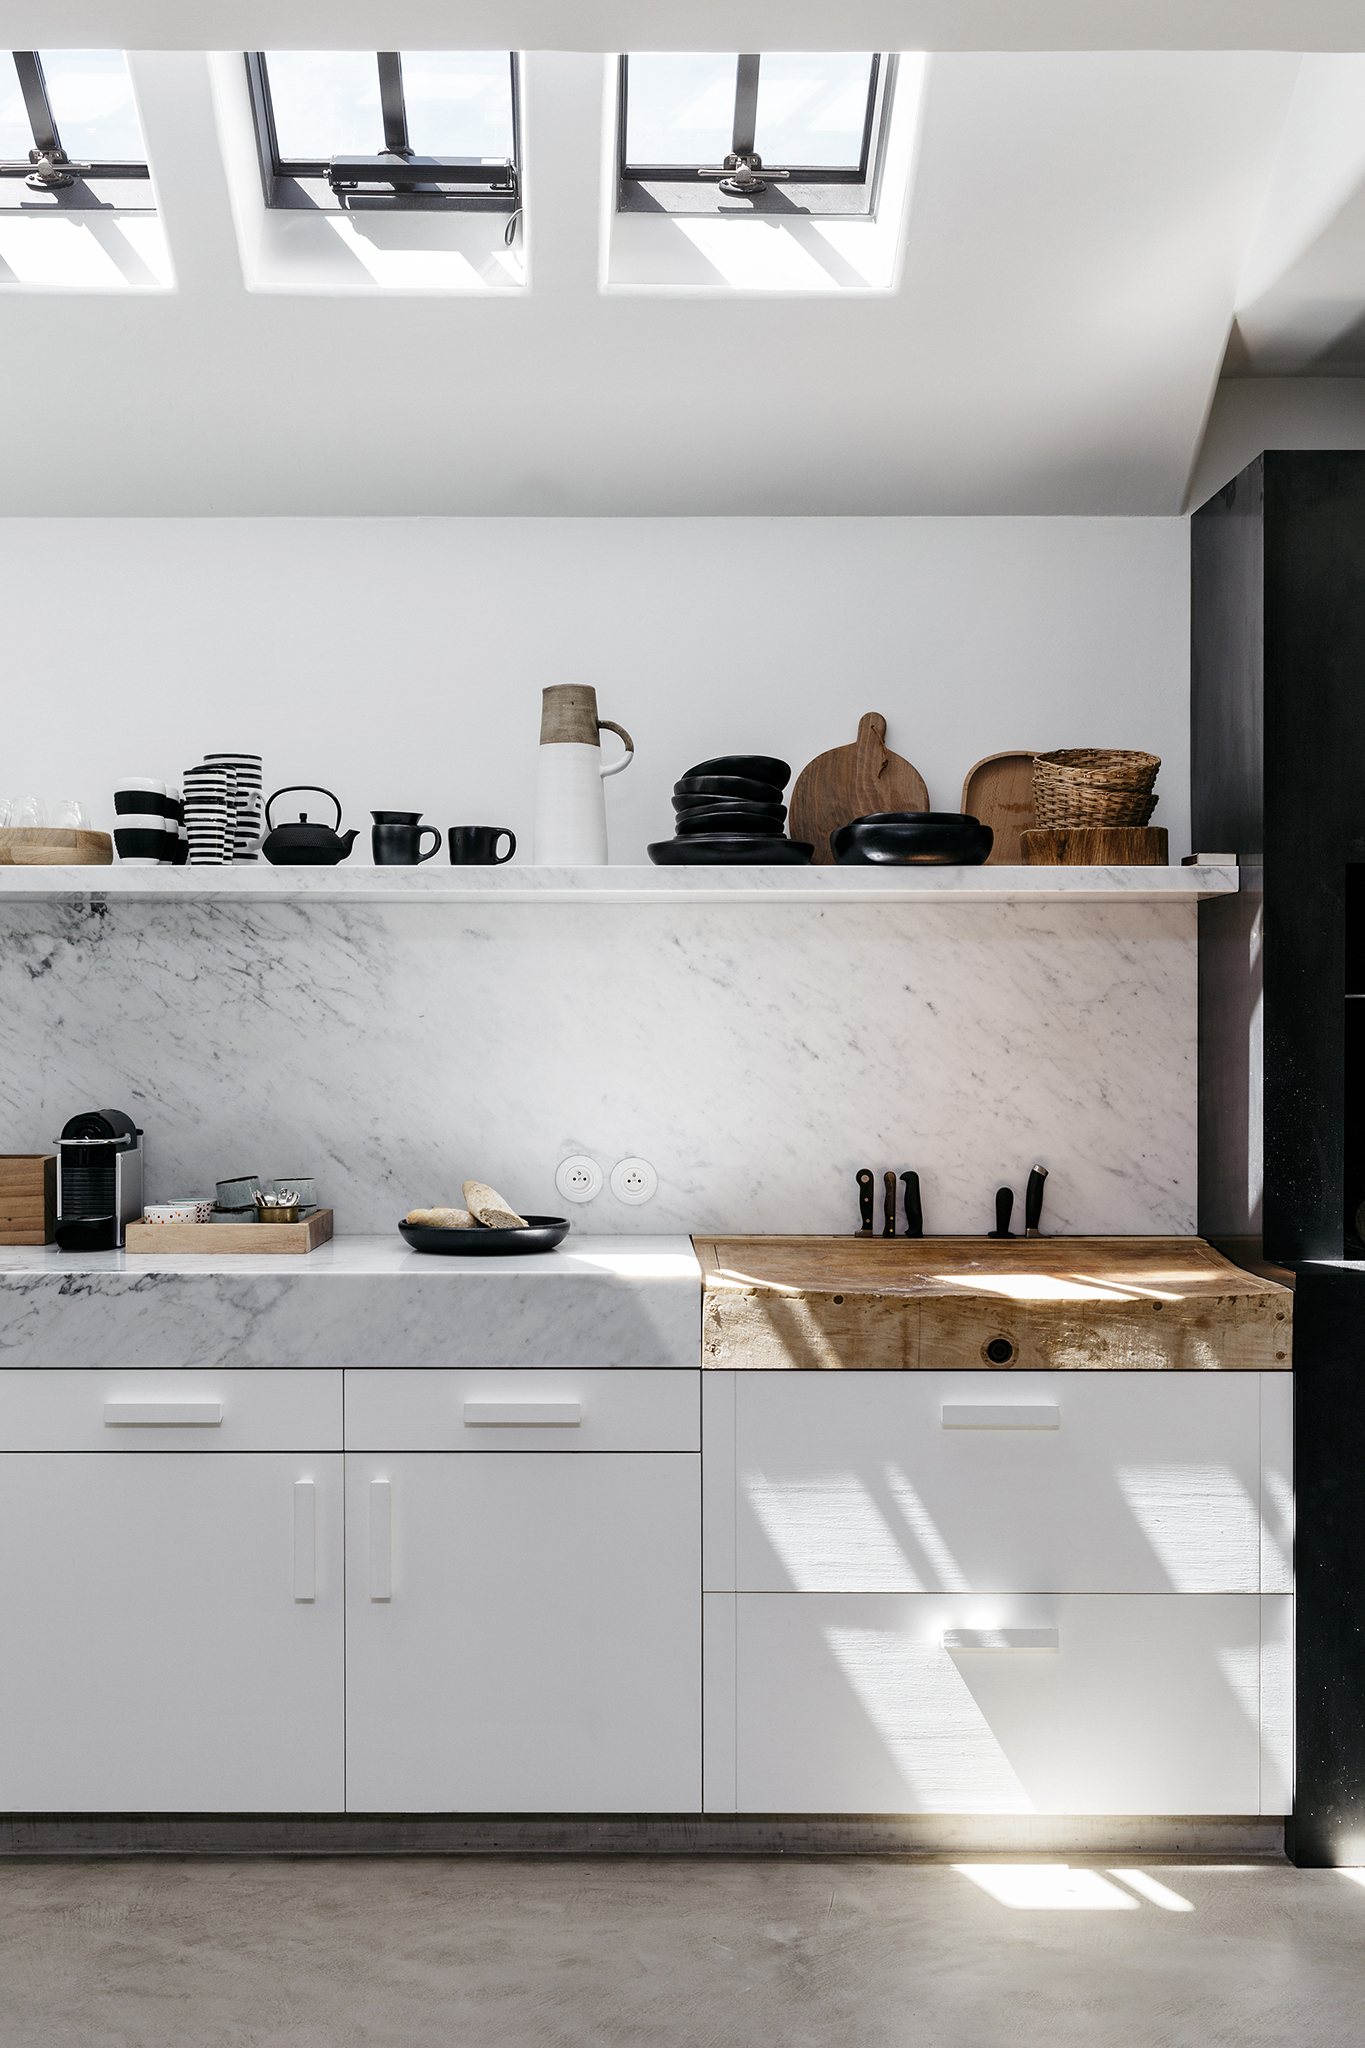 12 Contemporary Decor Ideas for the Kitchen That We're Pinning Right Now